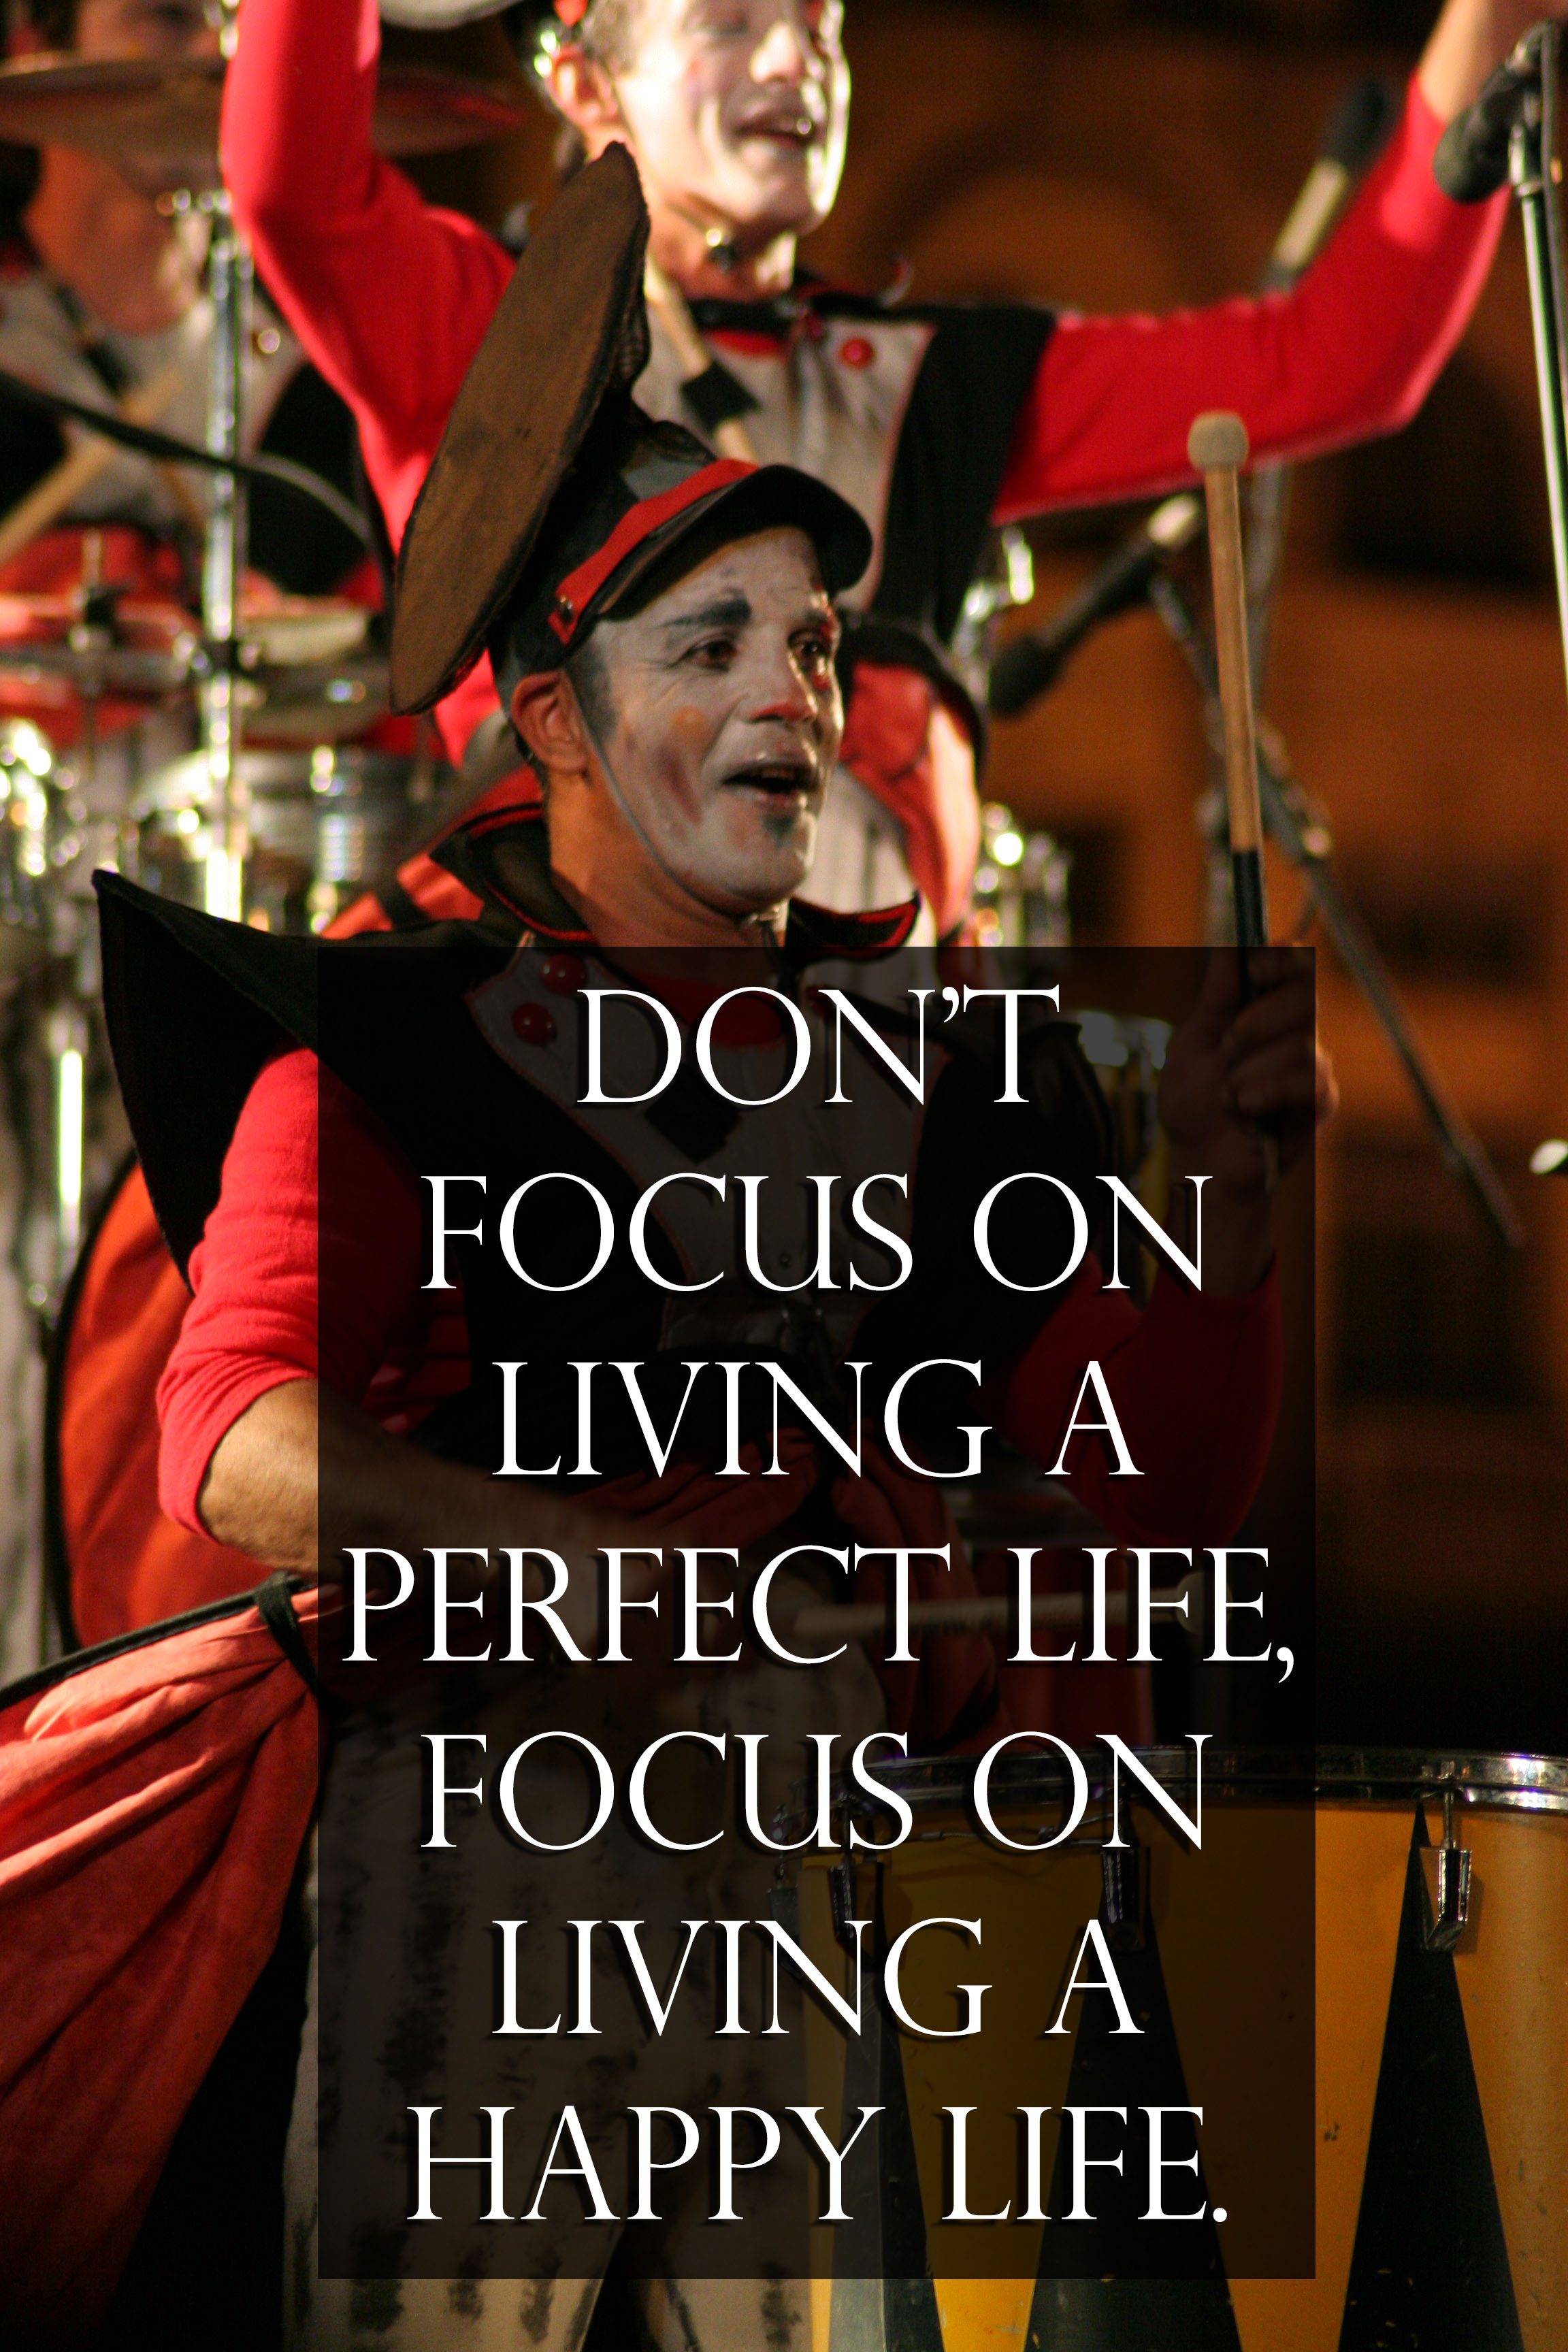 Don't focus on living a perfect life, focus on living a happy one